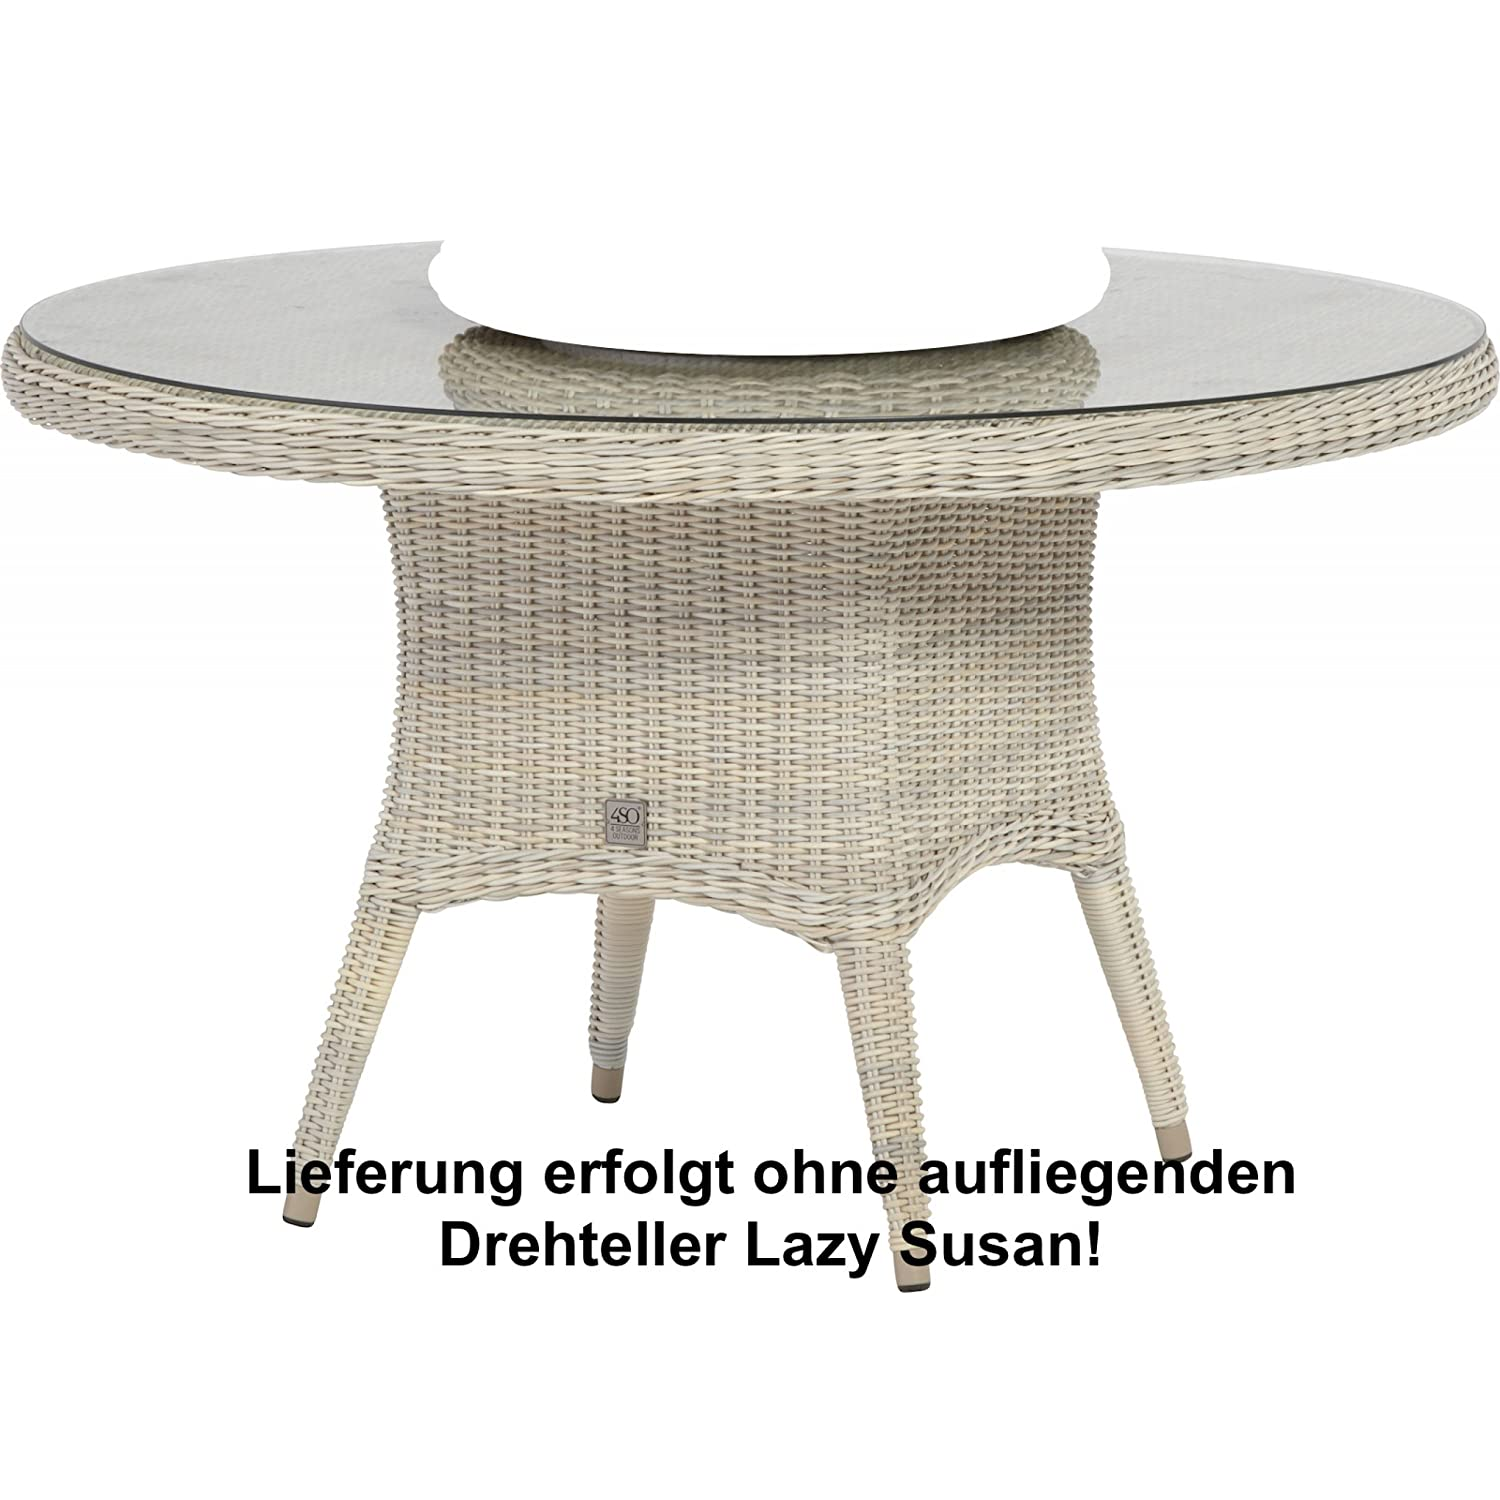 4Seasons Outdoor Victoria dining Tisch ø 130 cm inkl. Glasplatte Provance wicker